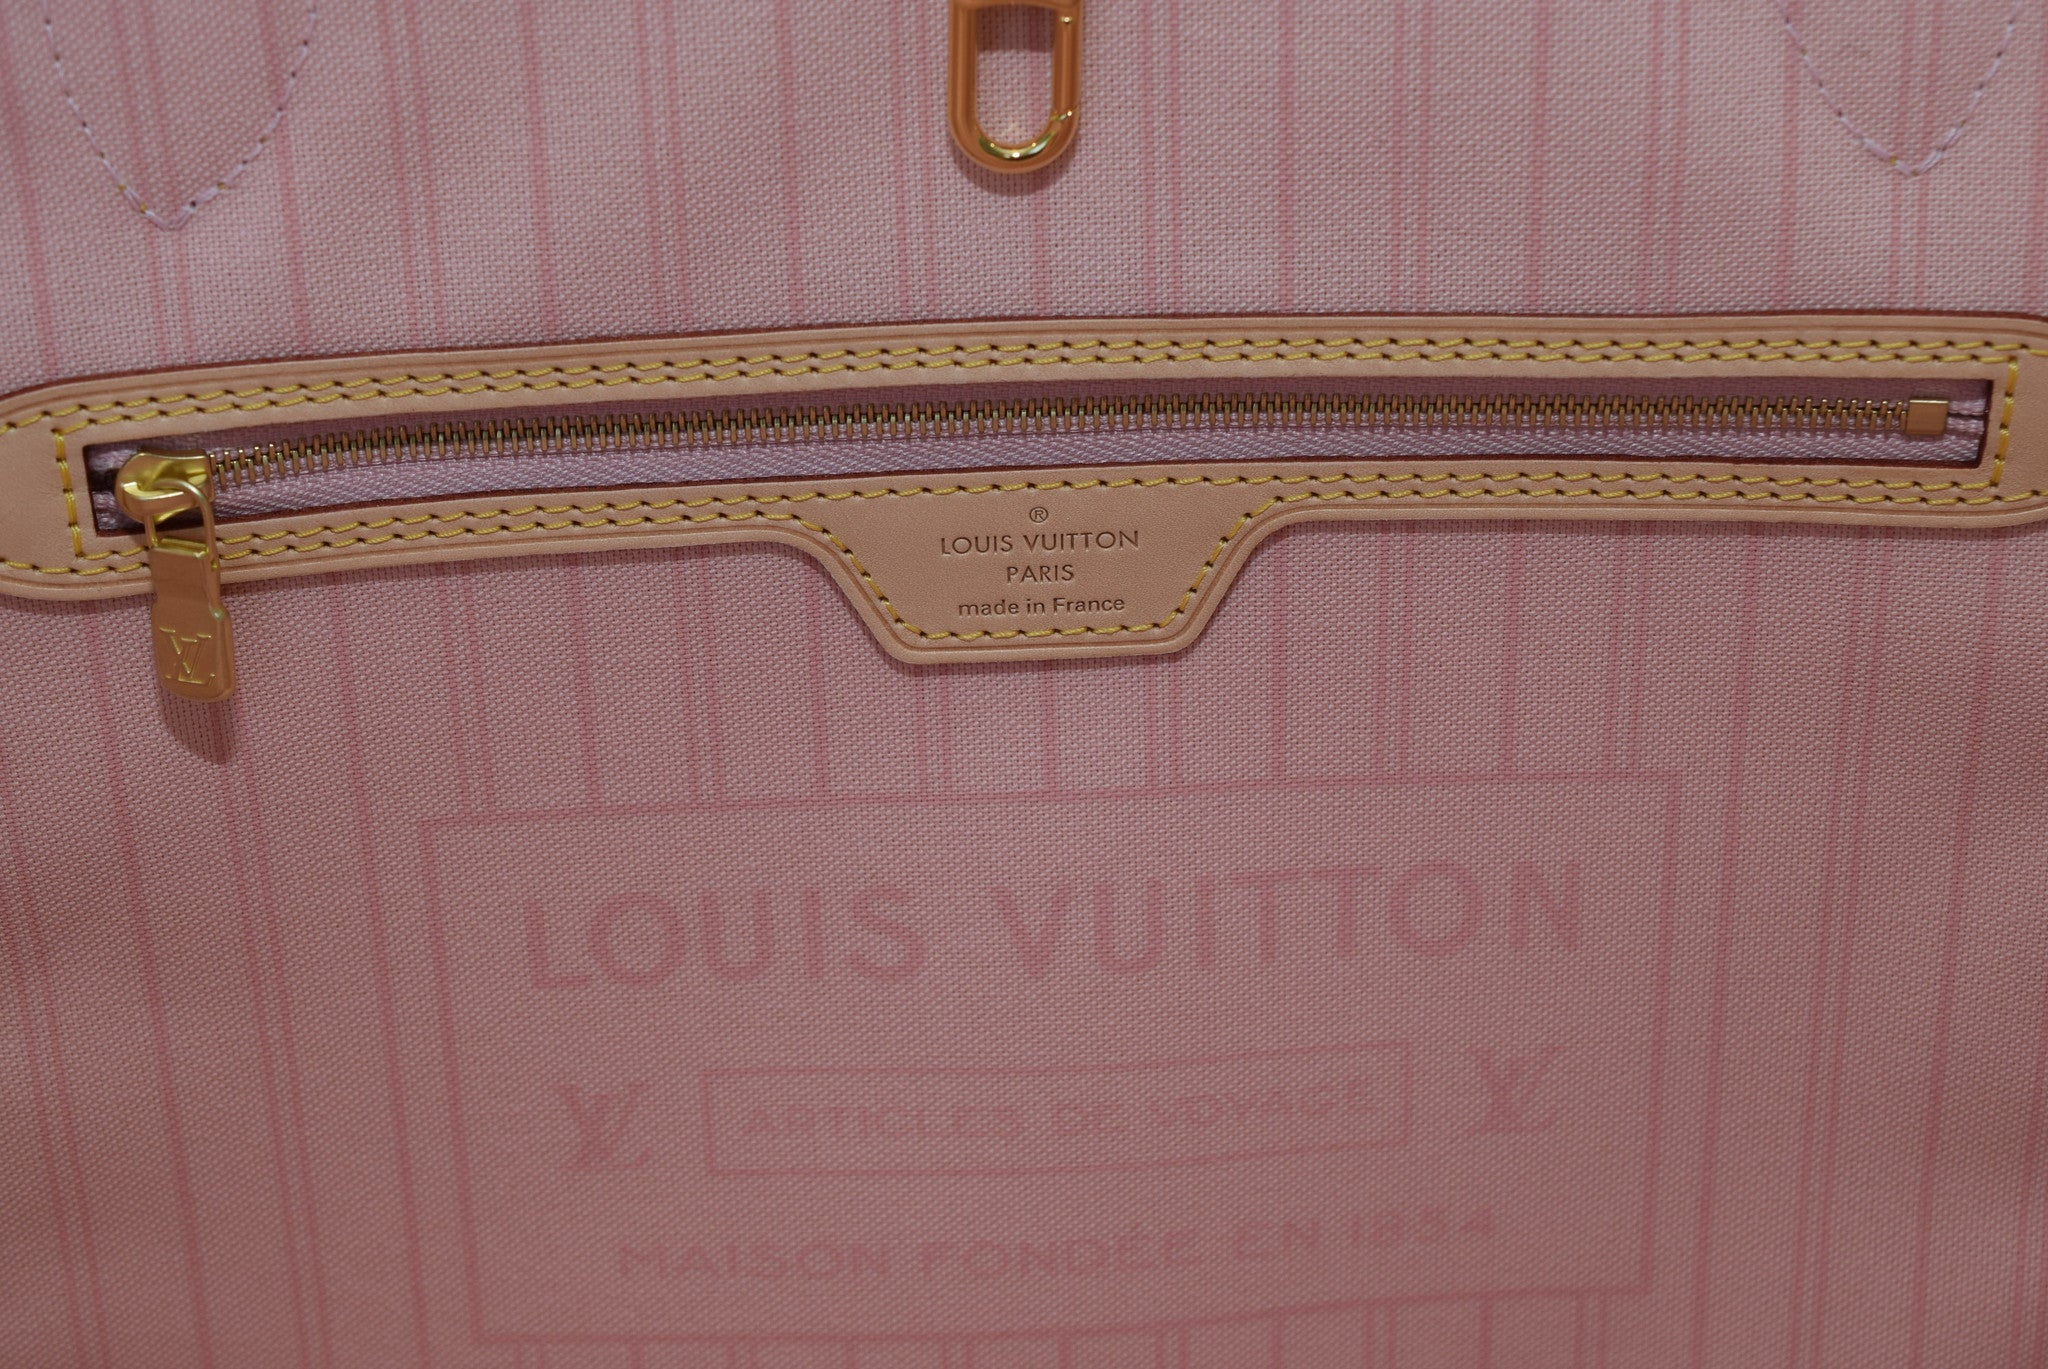 ... LOUIS VUITTON Brand New!!! Neverfull Mm In - Date Code Sr1176 - Made ... 898163fb39a70